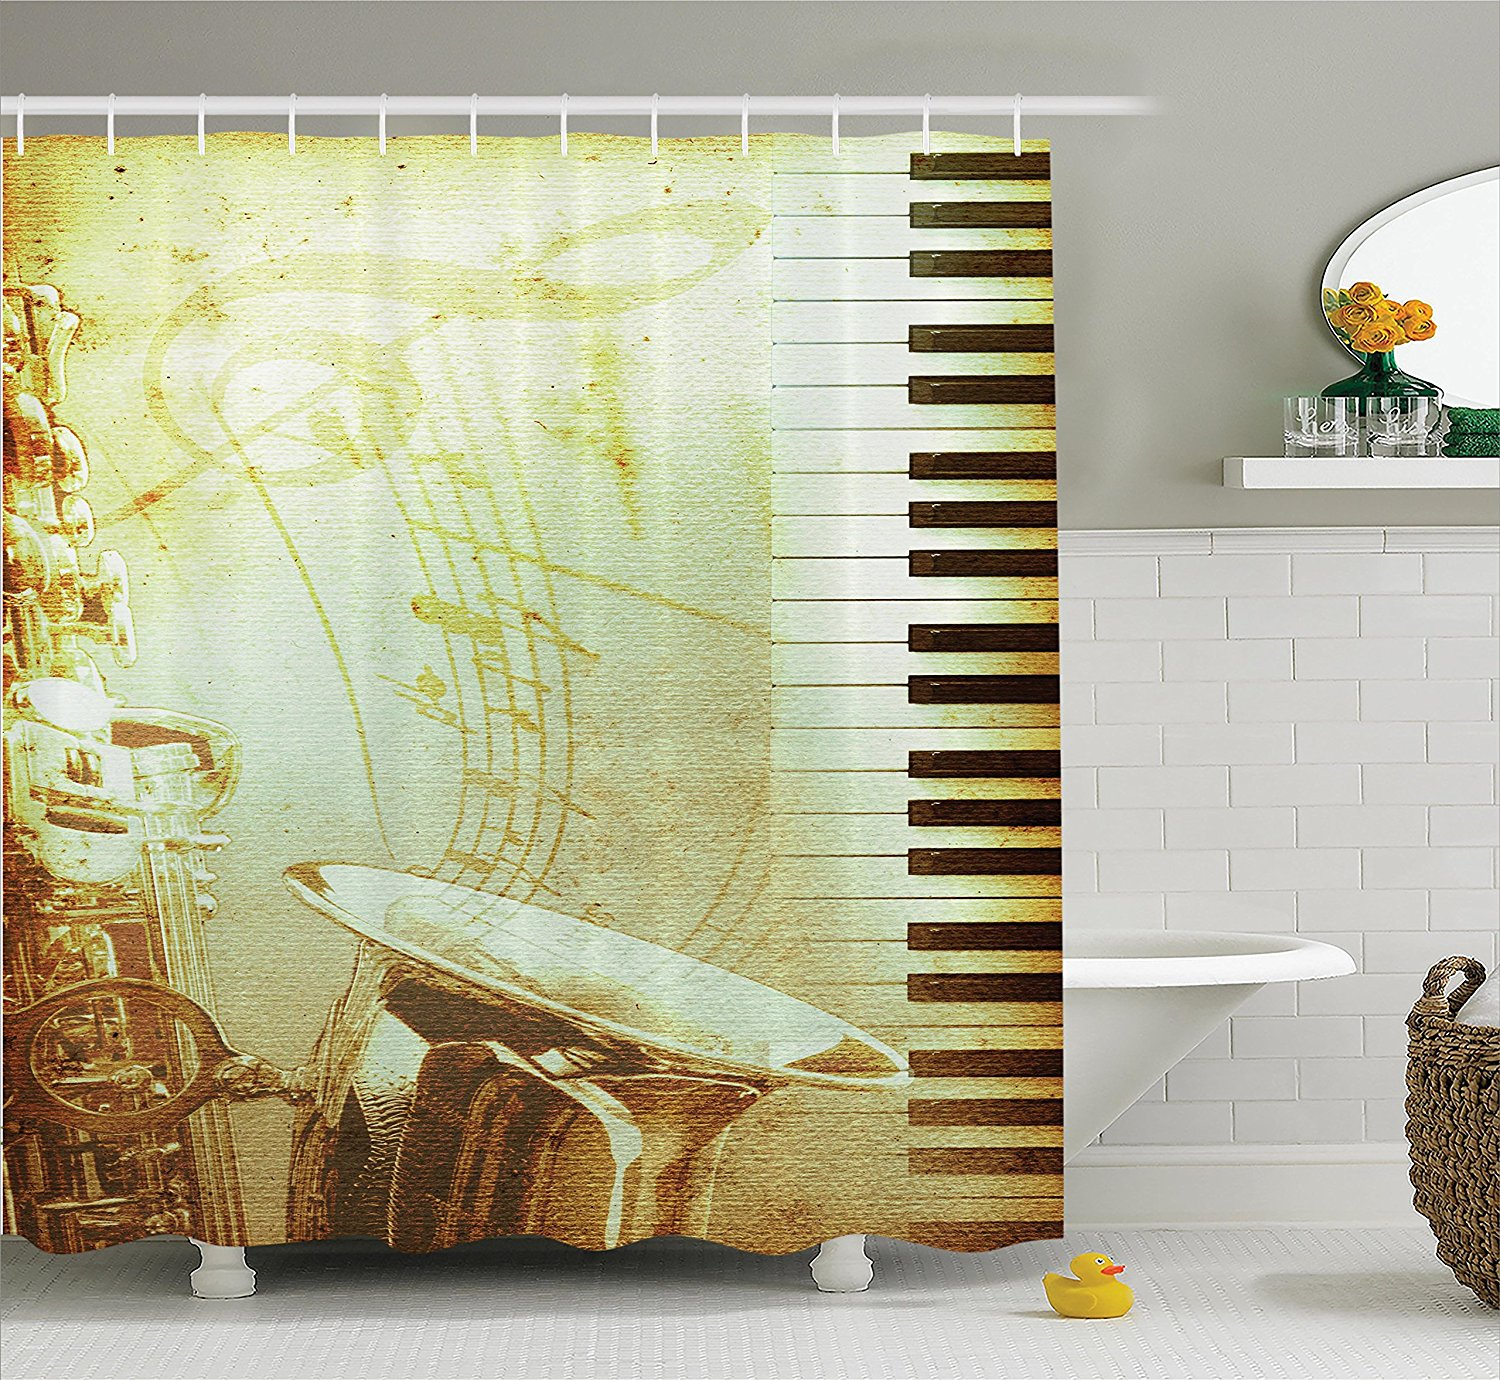 sports equipment football soccer darts ice hockey baseball basketball image print polyester fabric bathroom shower curtain